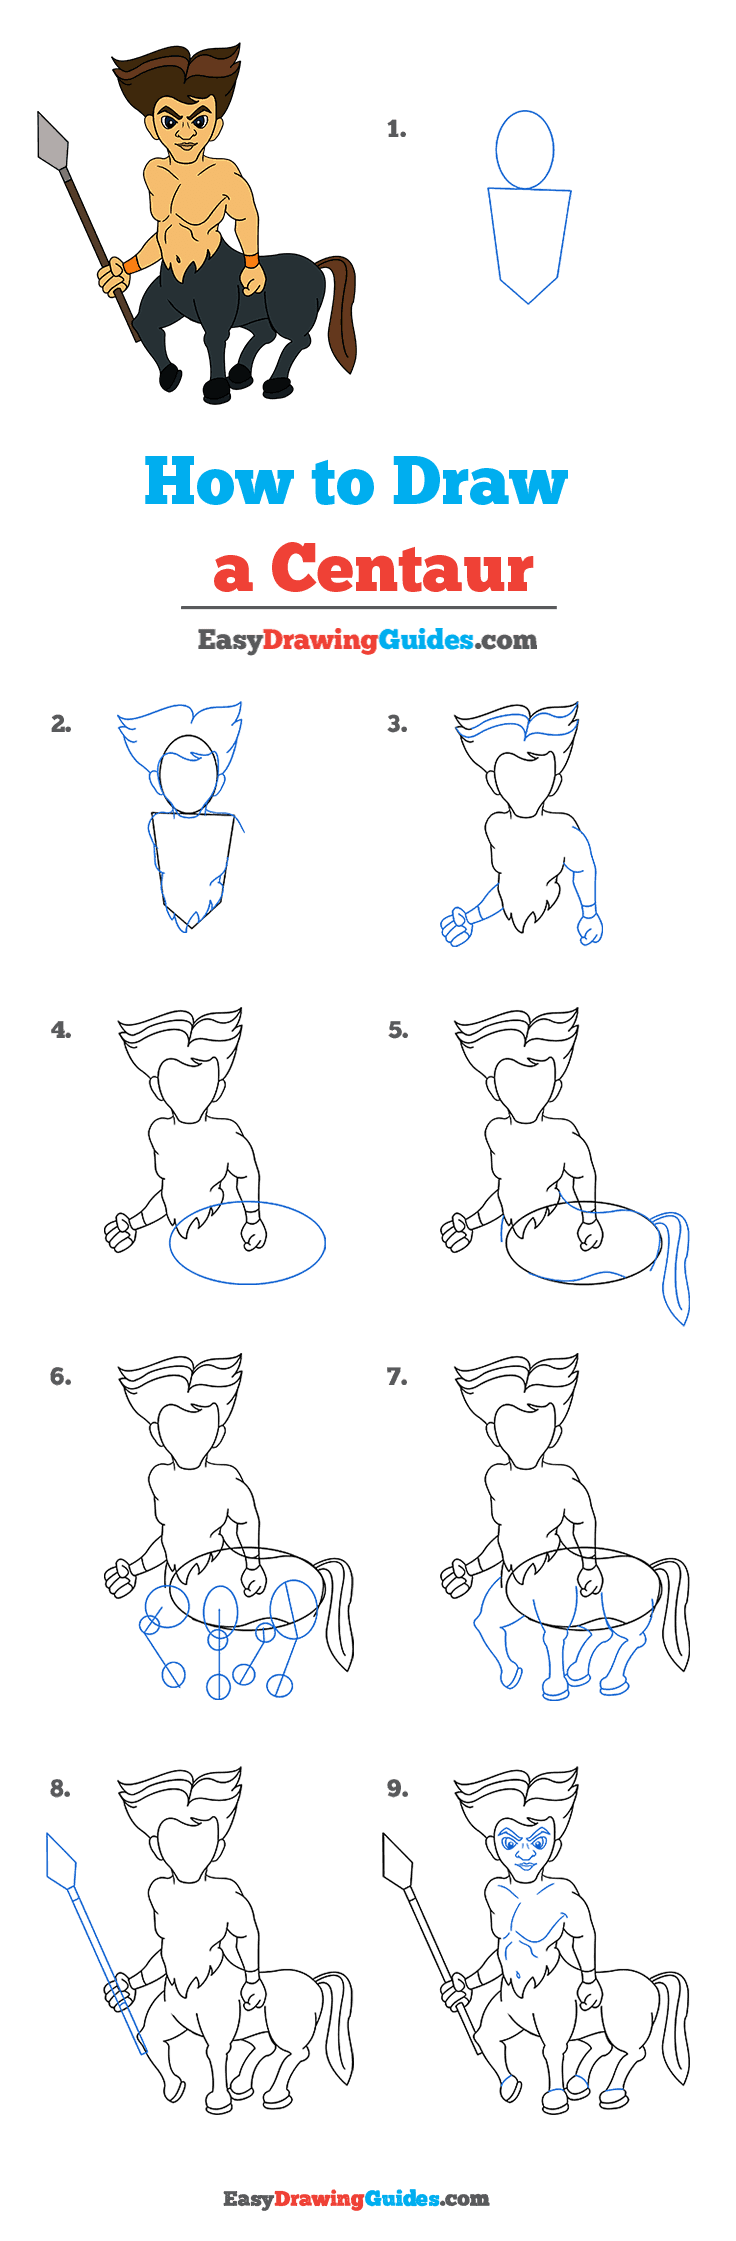 How to Draw a Centaur Step by Step Tutorial Image